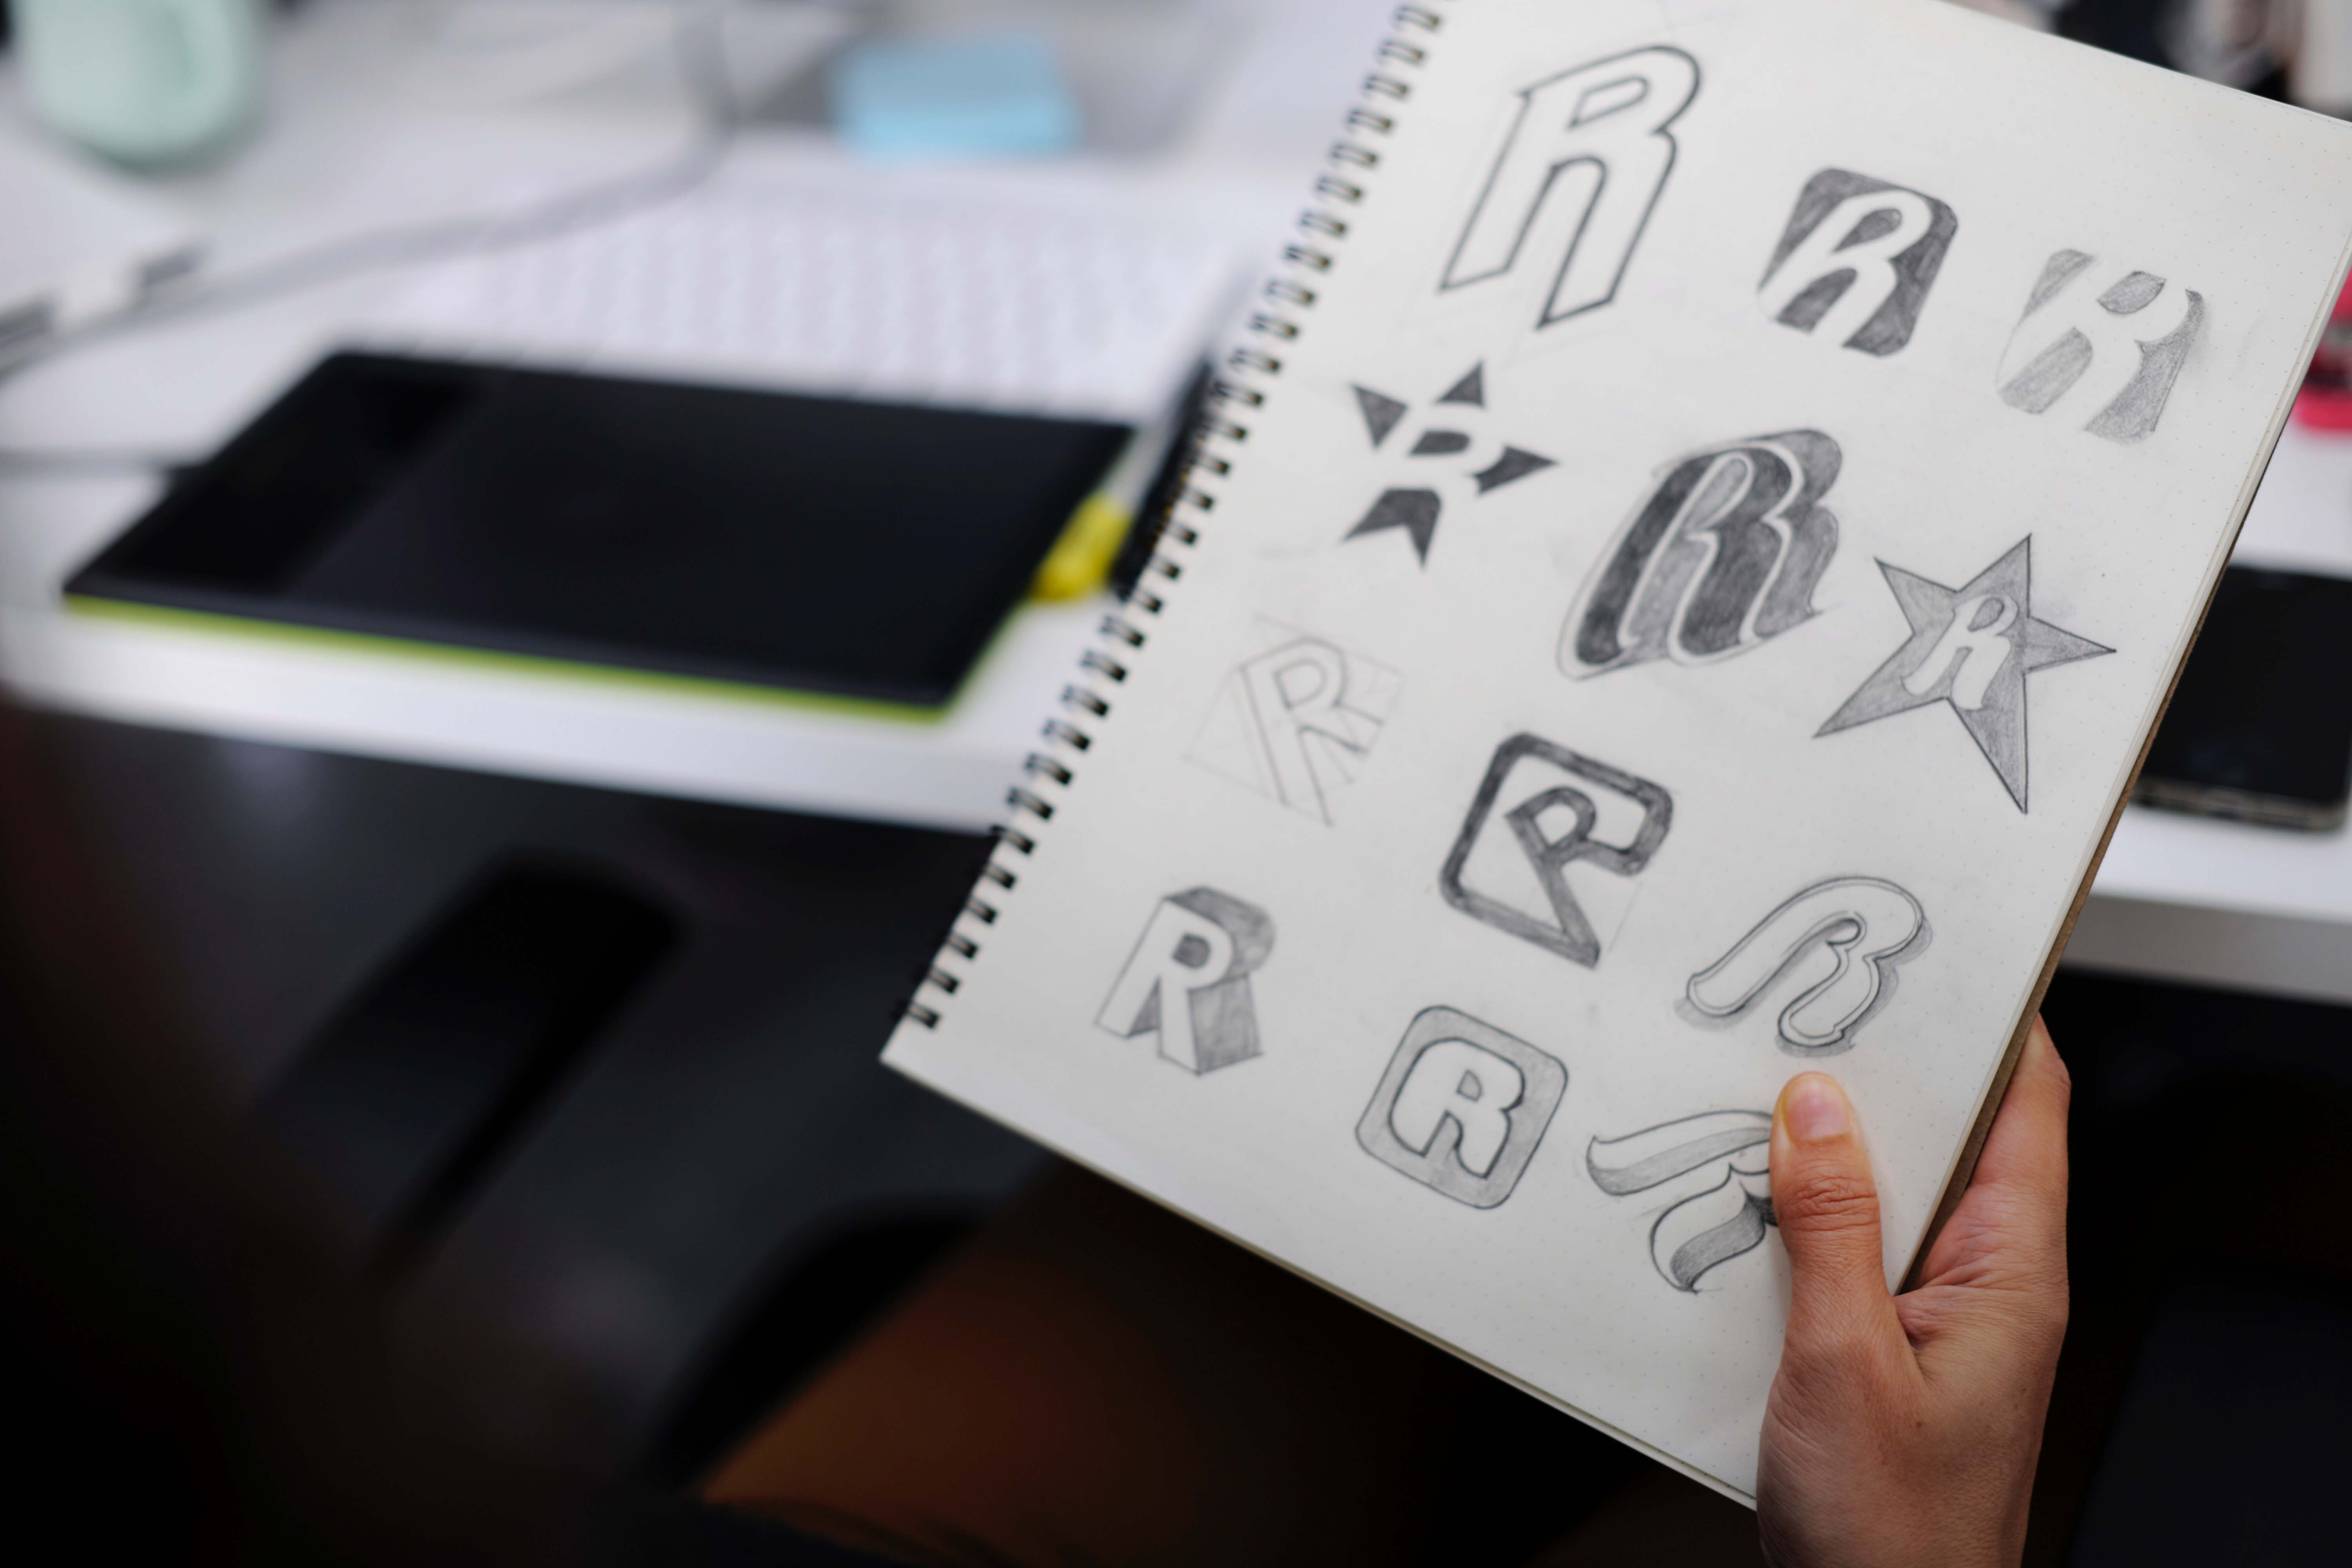 Sketched letters